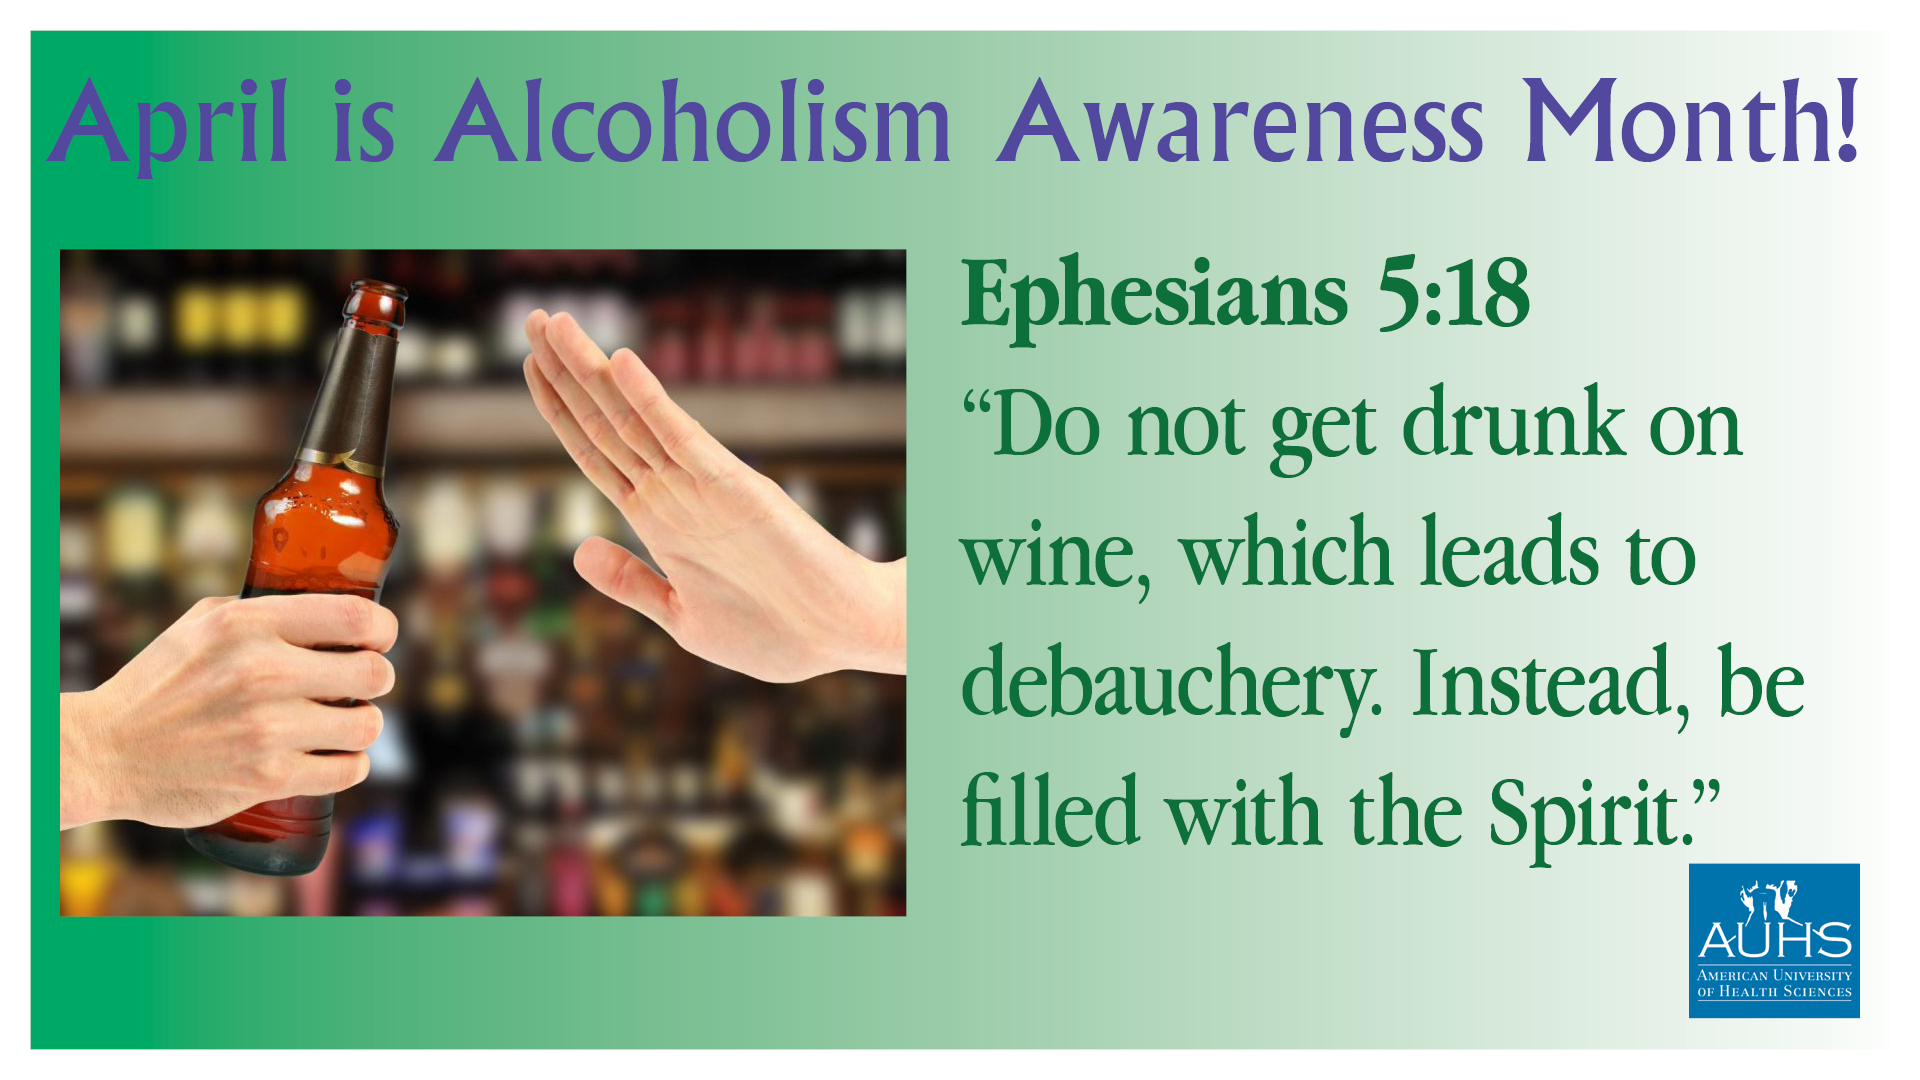 10 Facts About Alcoholism